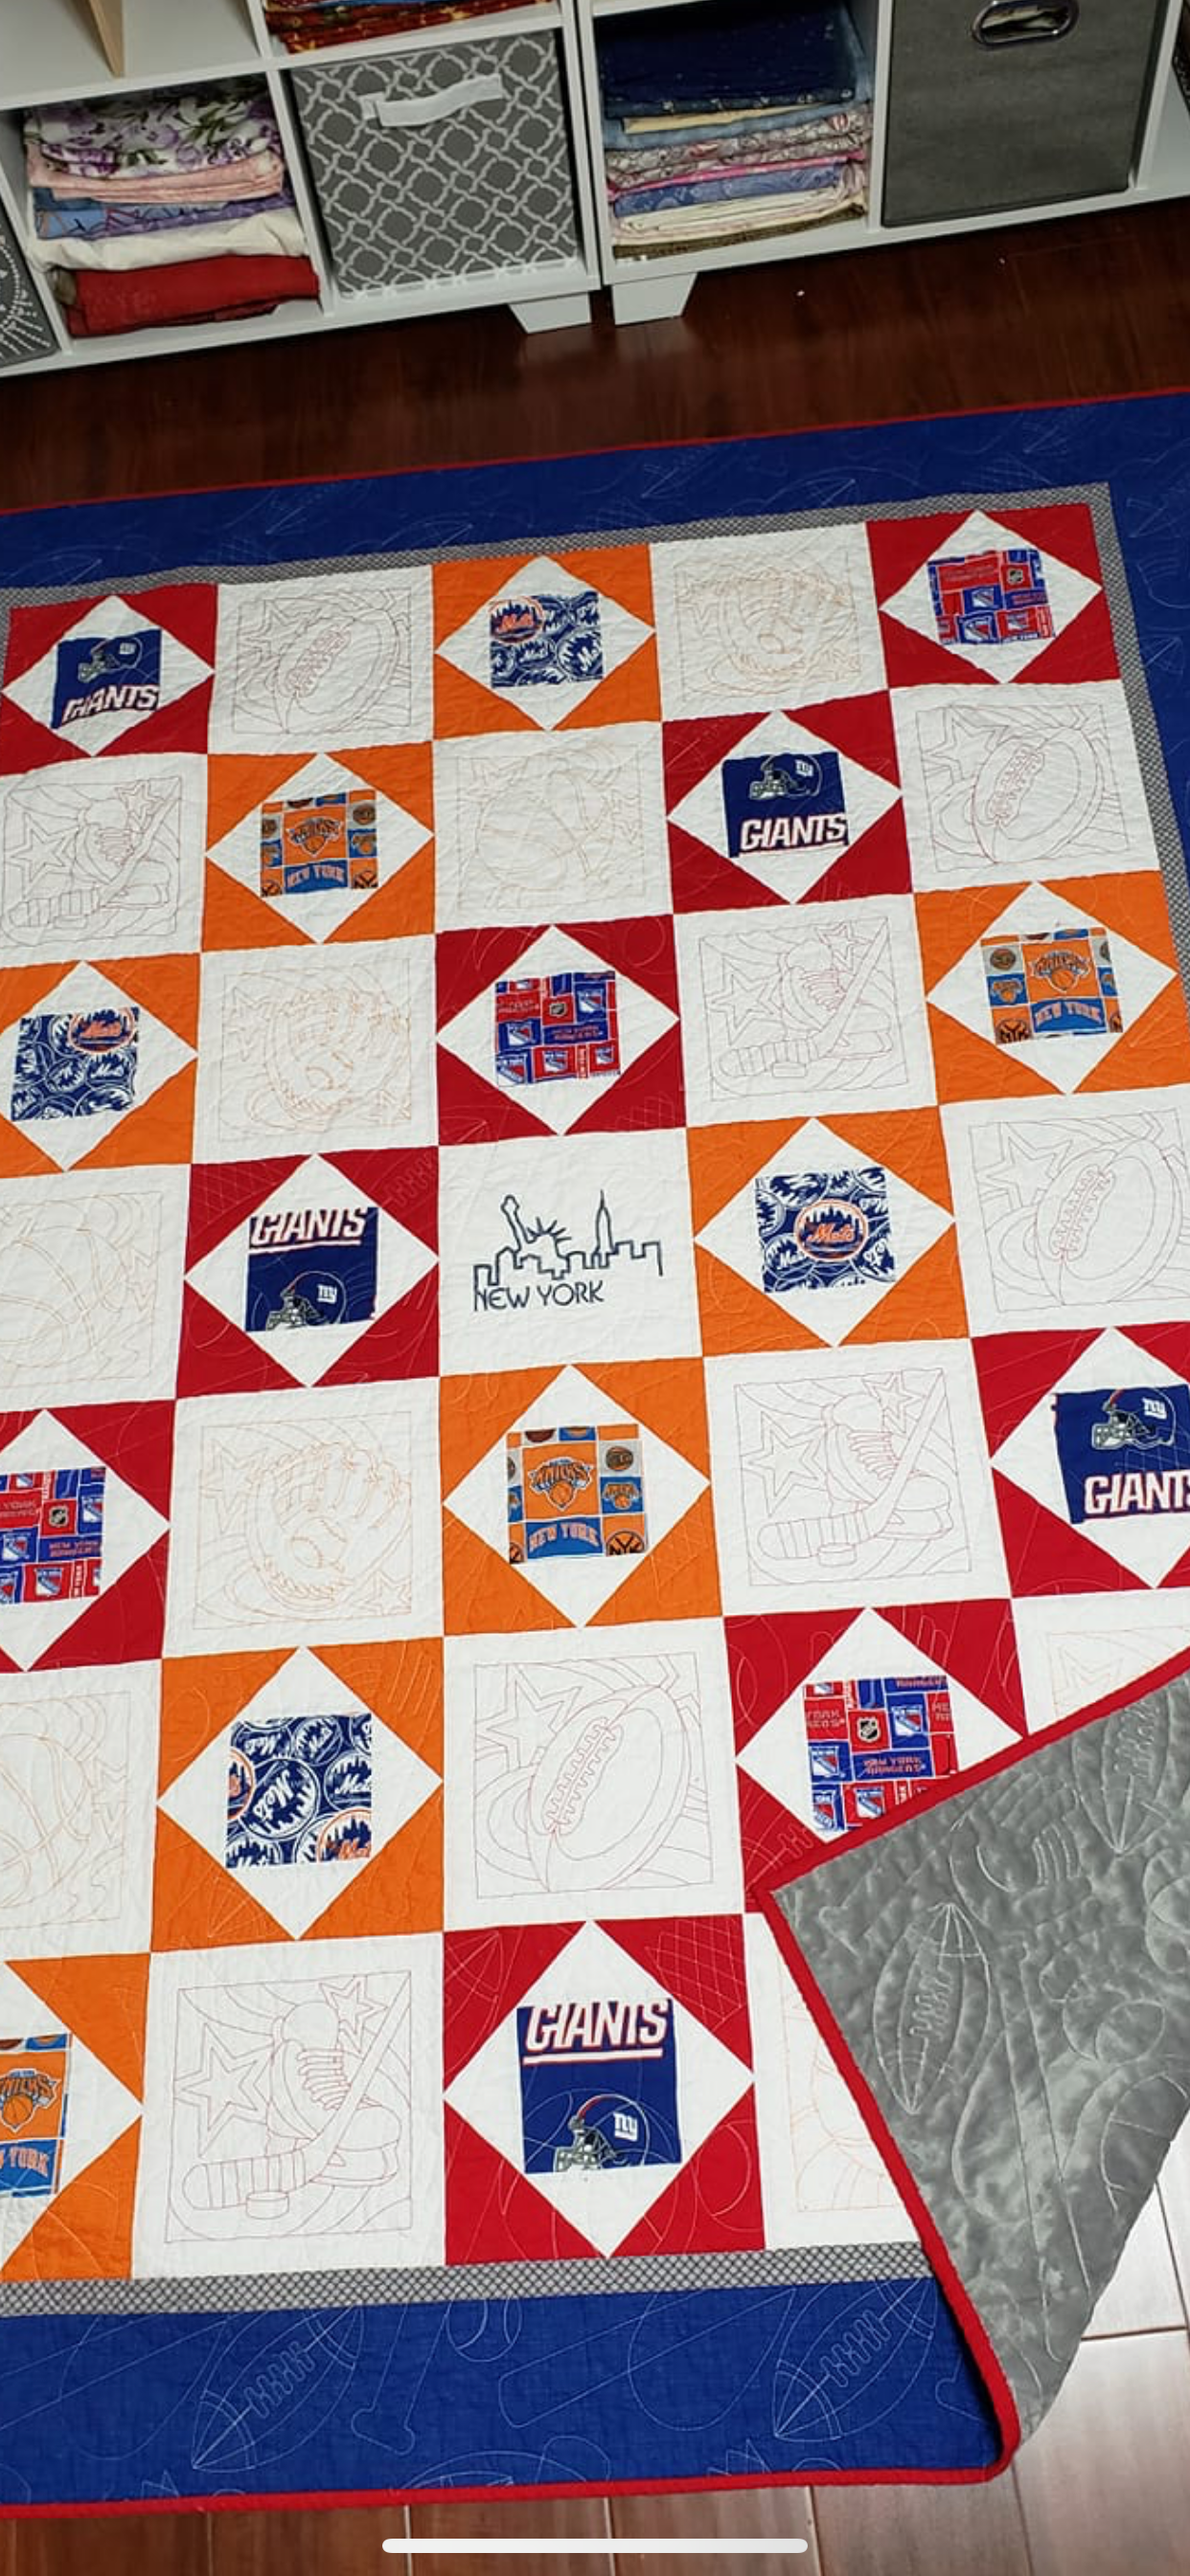 Pin by Cathy Faulstich on Quilting | Quilts, Kids rugs ...